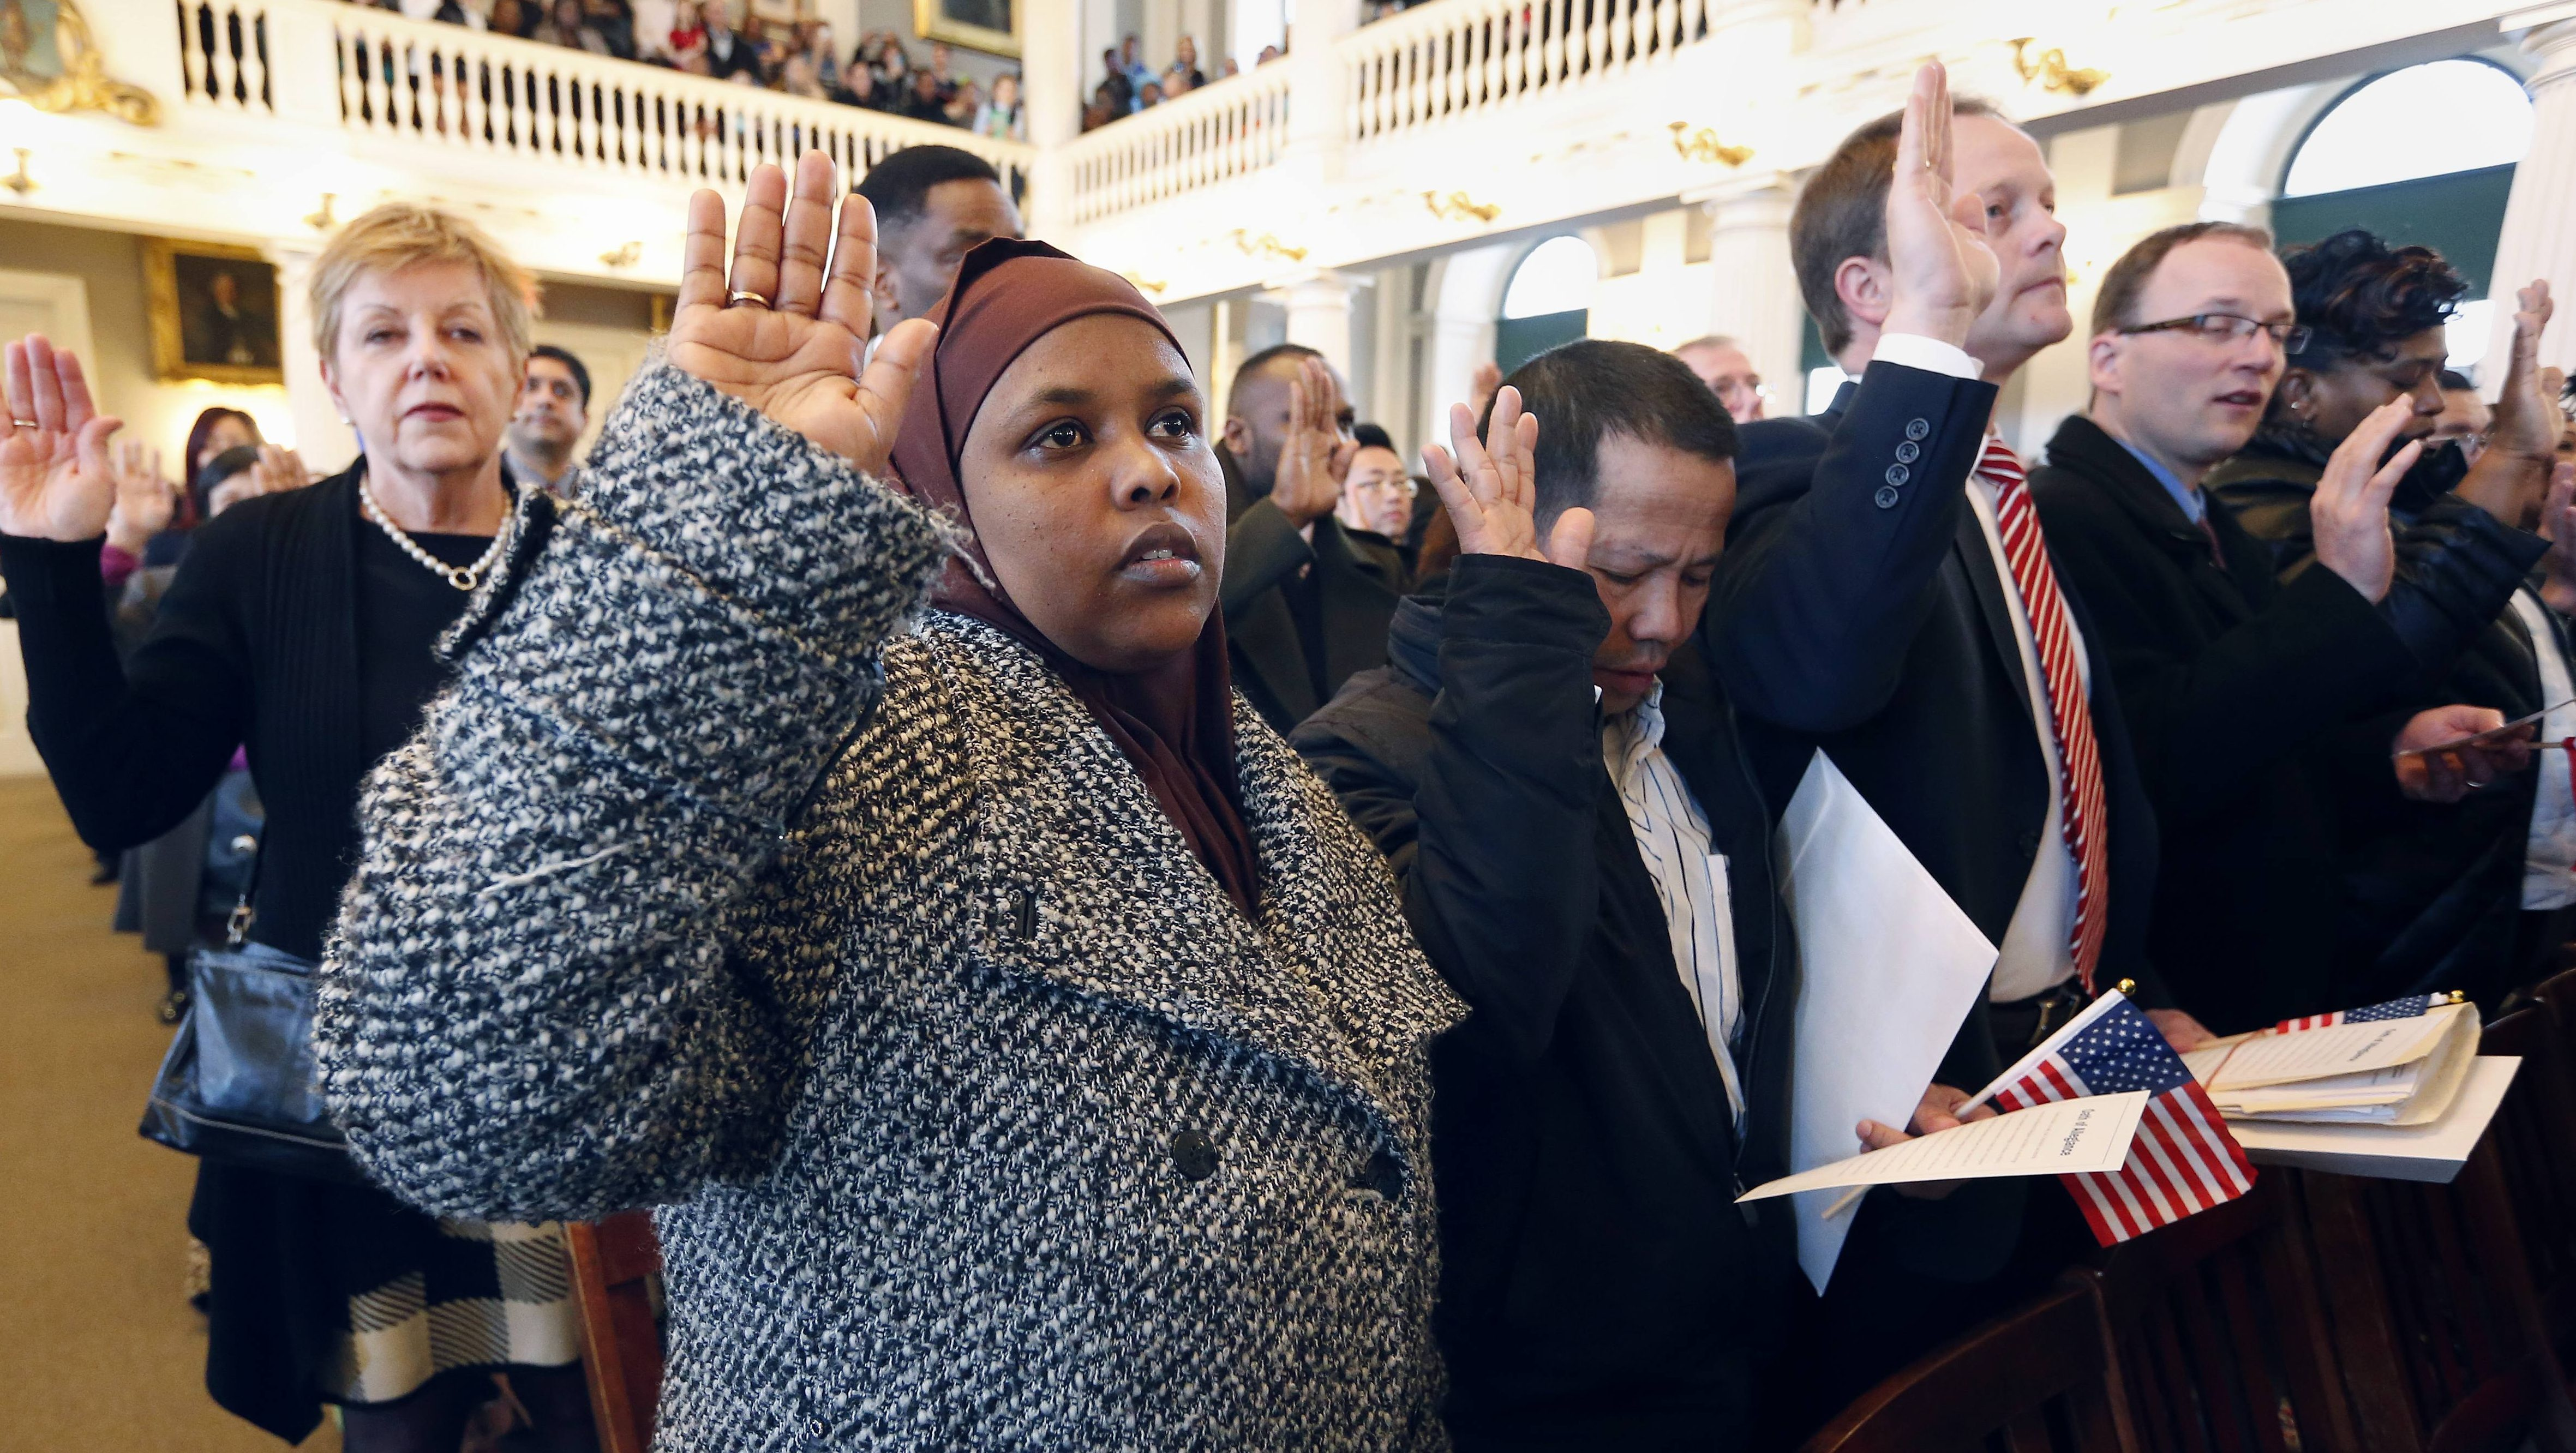 Hawd Ahmed, front left, who came from Somalia, takes the oath of U.S. citizenship during a naturalization ceremony in Boston, Thursday, April 2, 2015. Nearly 400 people from dozens of countries ranging from Albania to Zimbabwe took part in the ceremony.